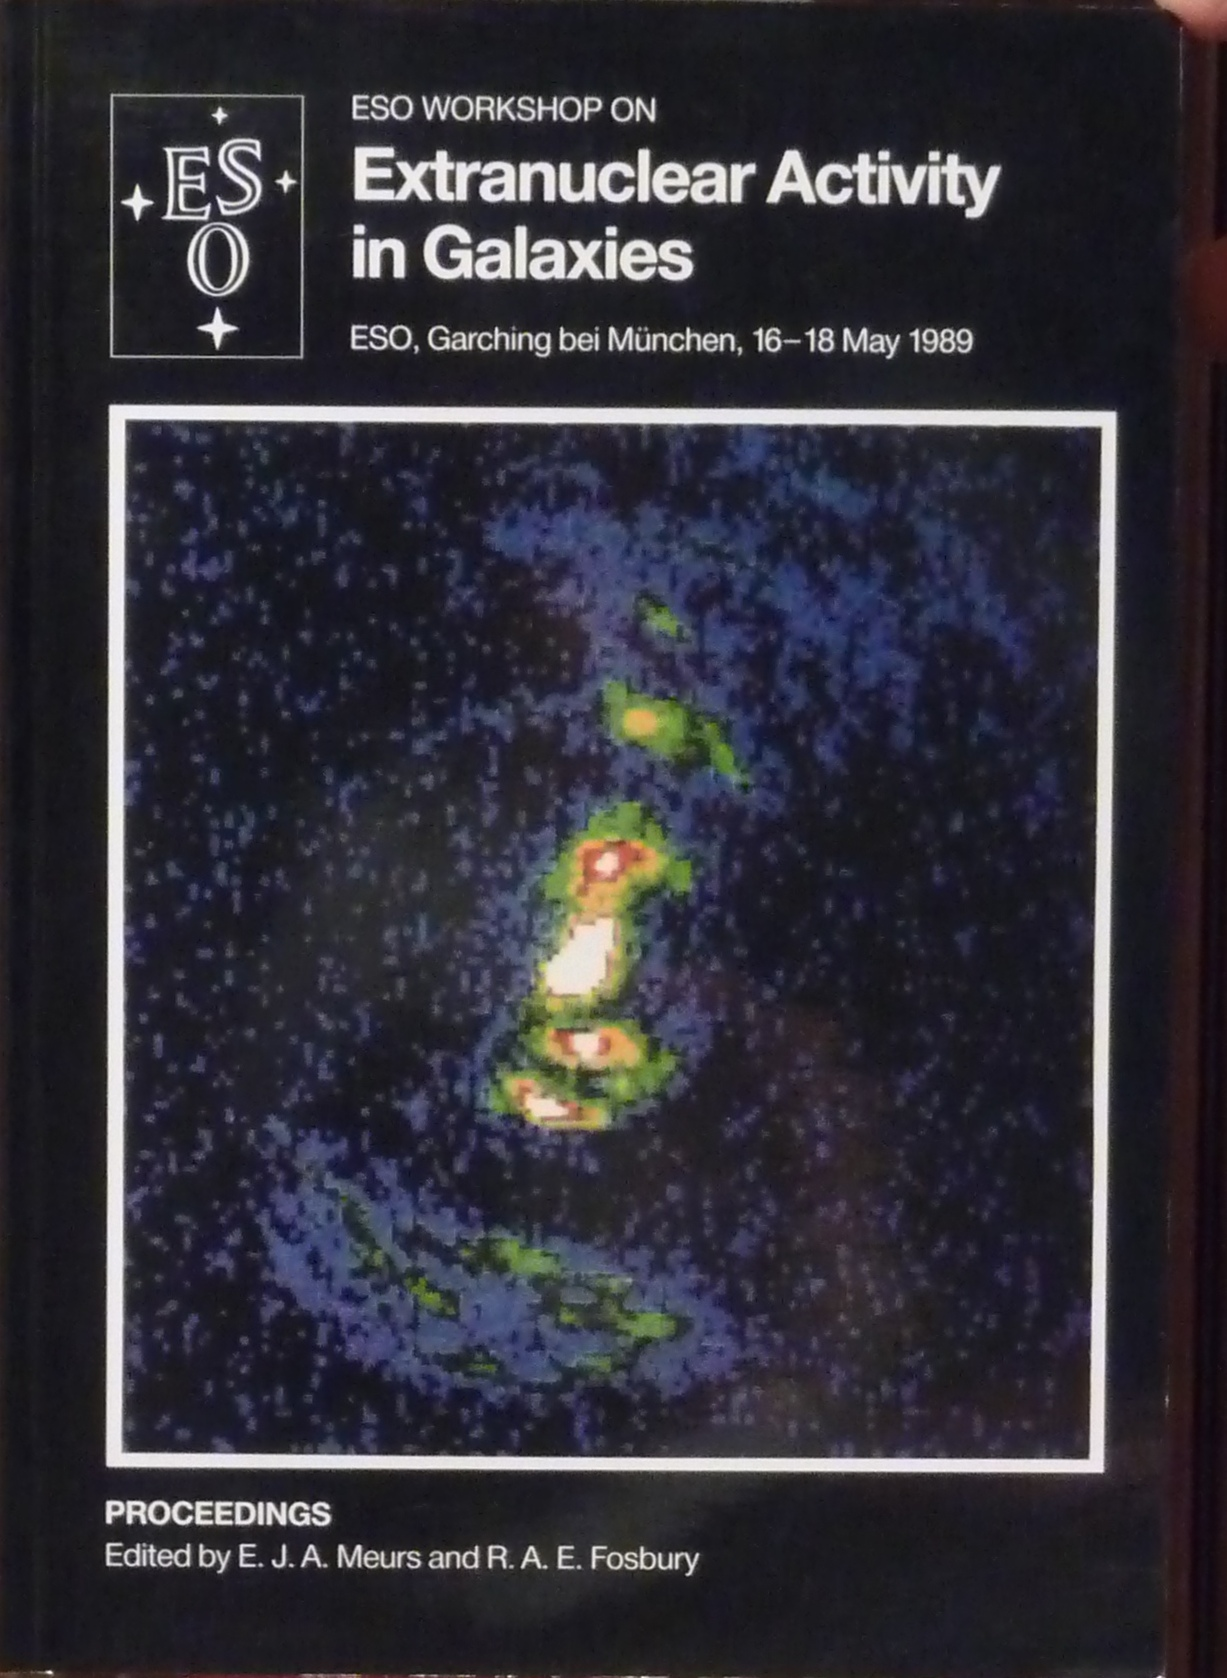 Extranuclear activity in galaxies